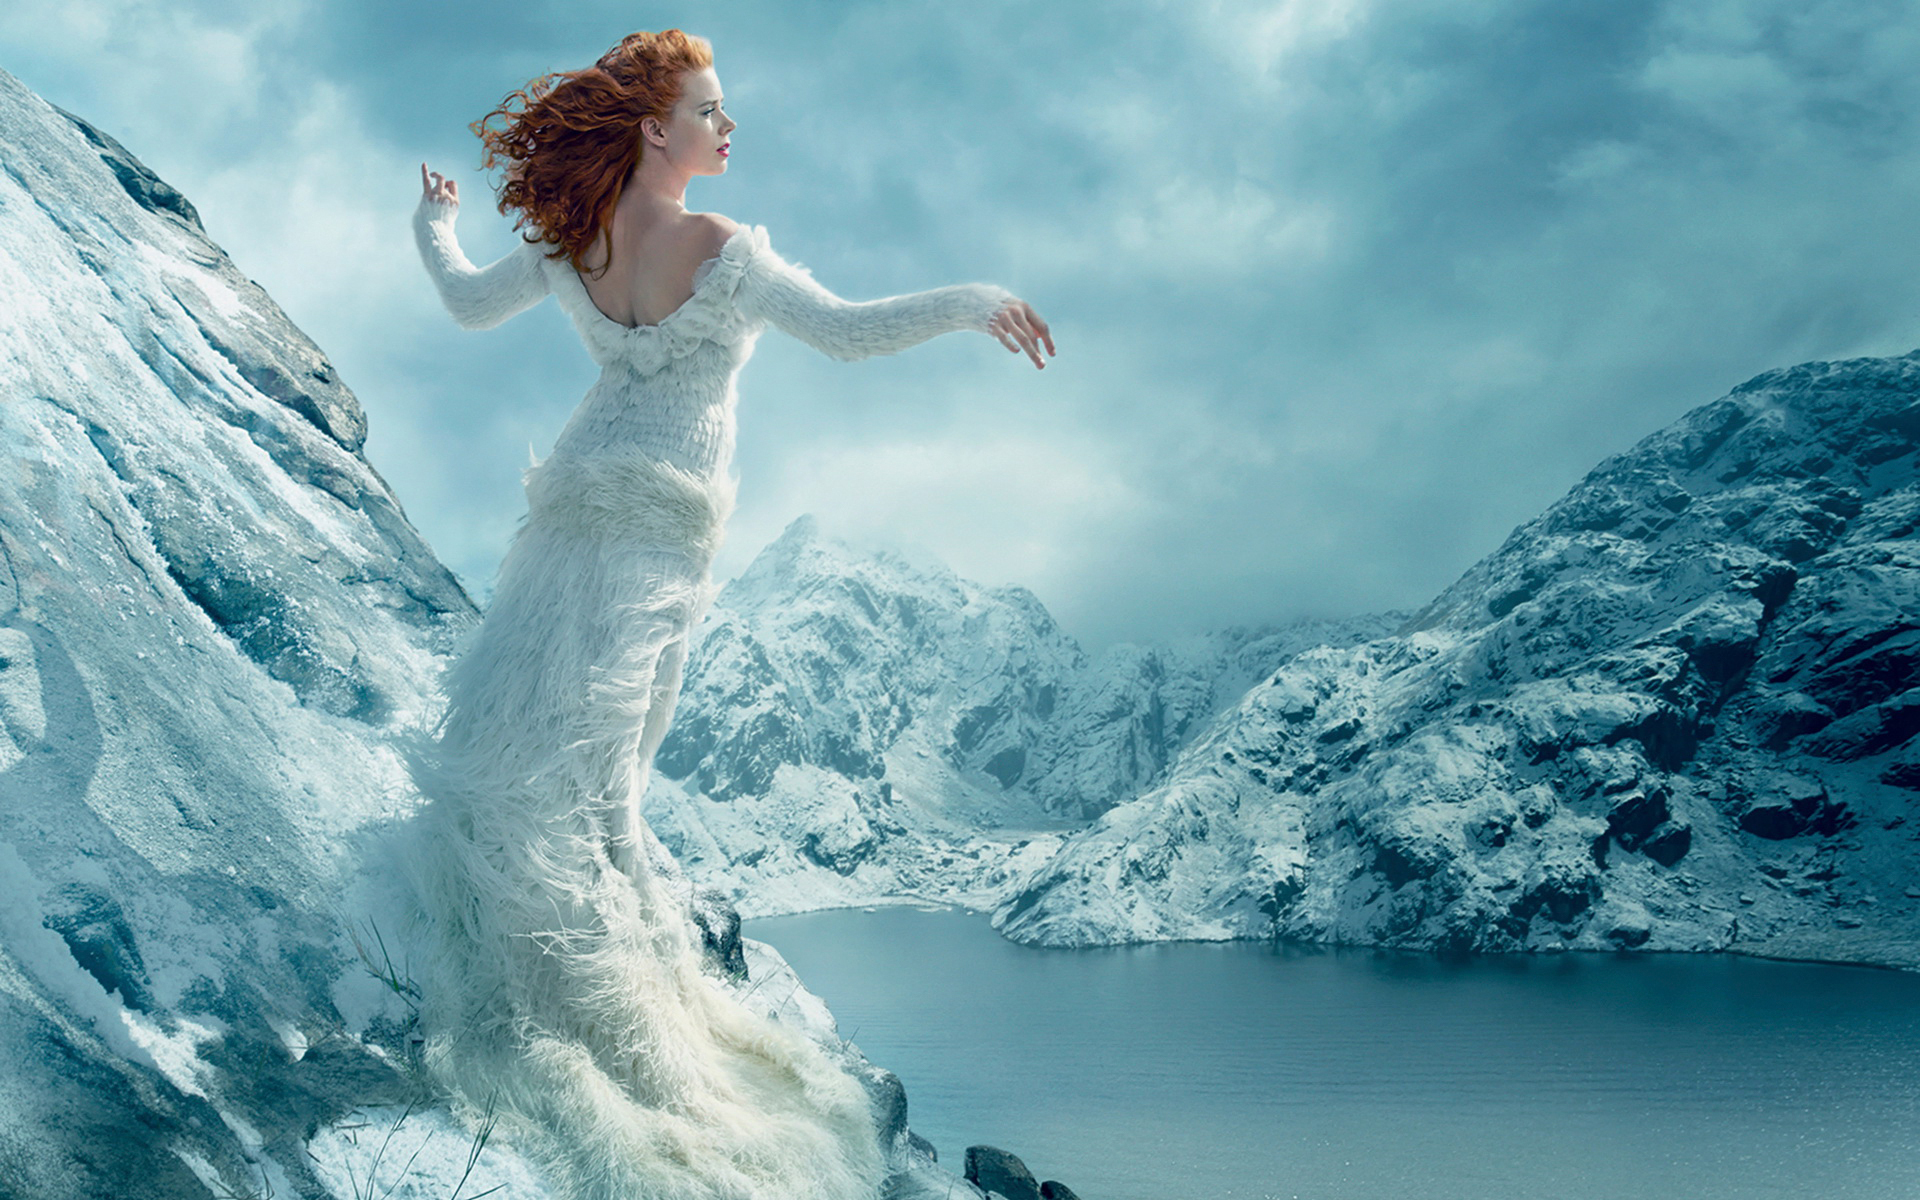 amazing amy adams wonderful snow flow pose still background desktop hd mobile wallpaper free